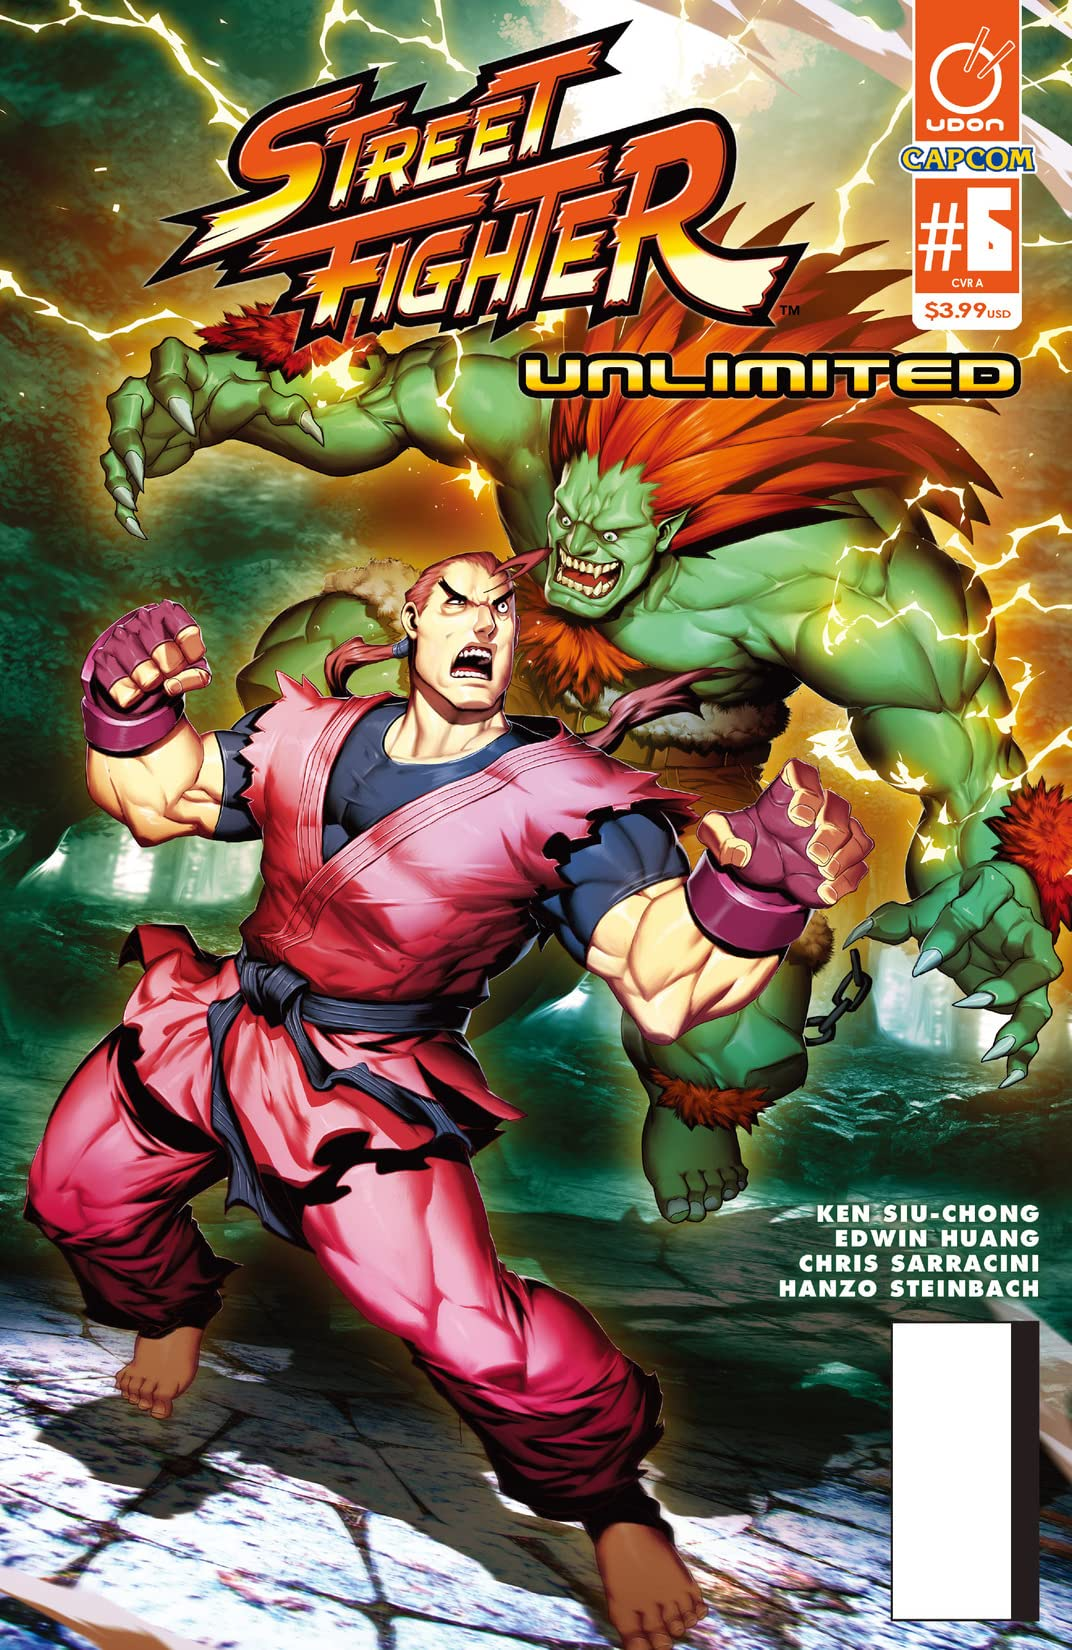 Street Fighter Unlimited #6